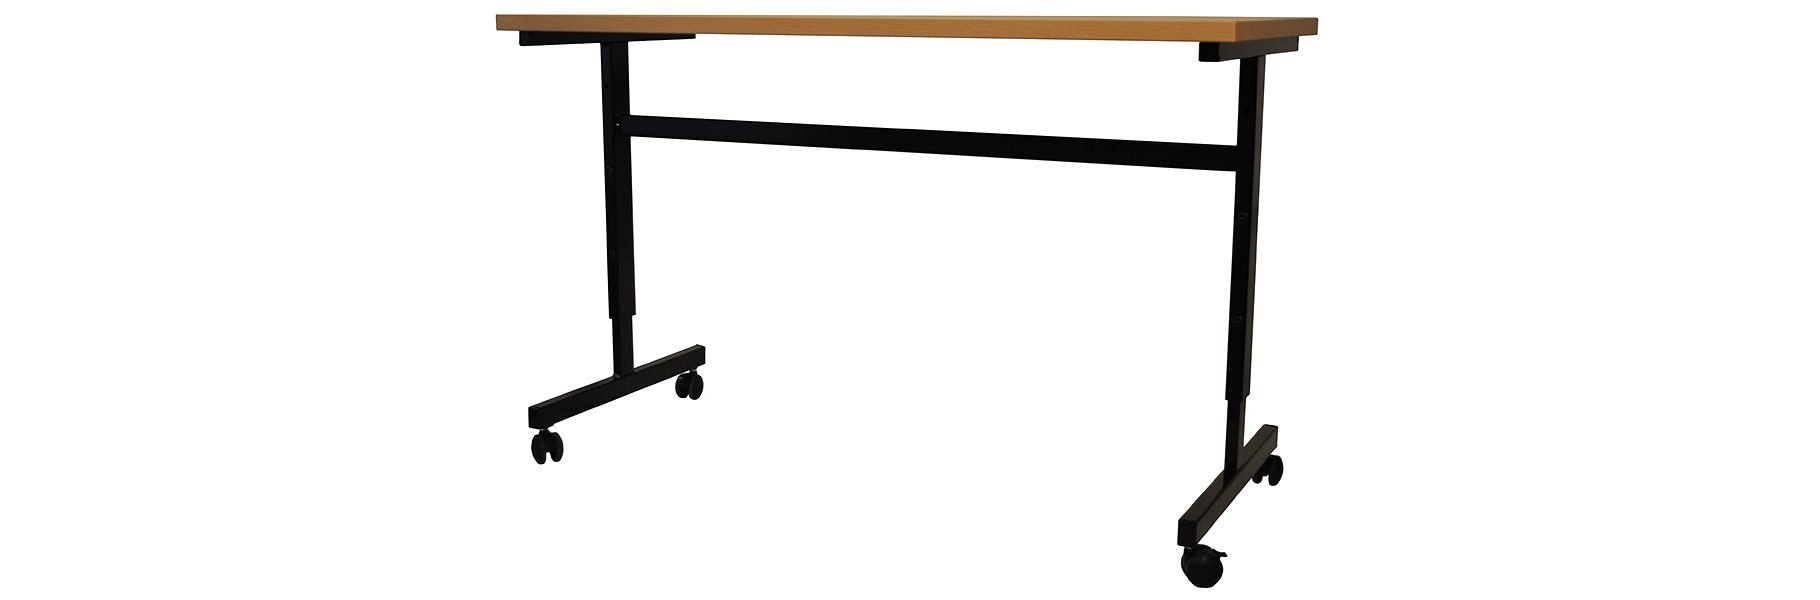 Corilam 612 Table Casters